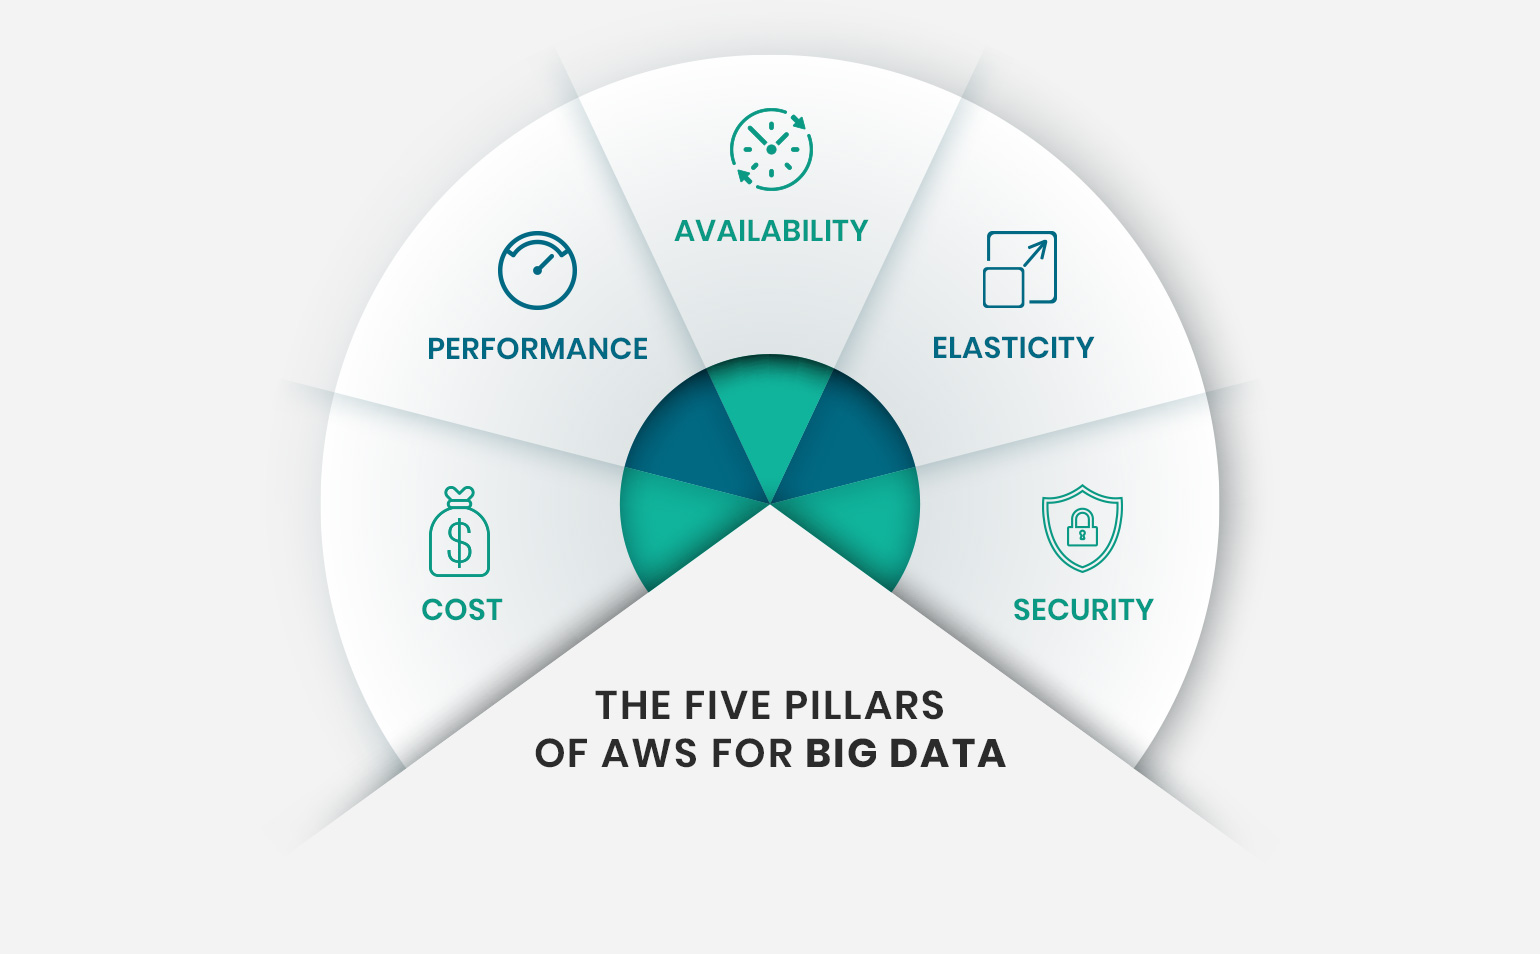 The Five Pillars of AWS for Big Data